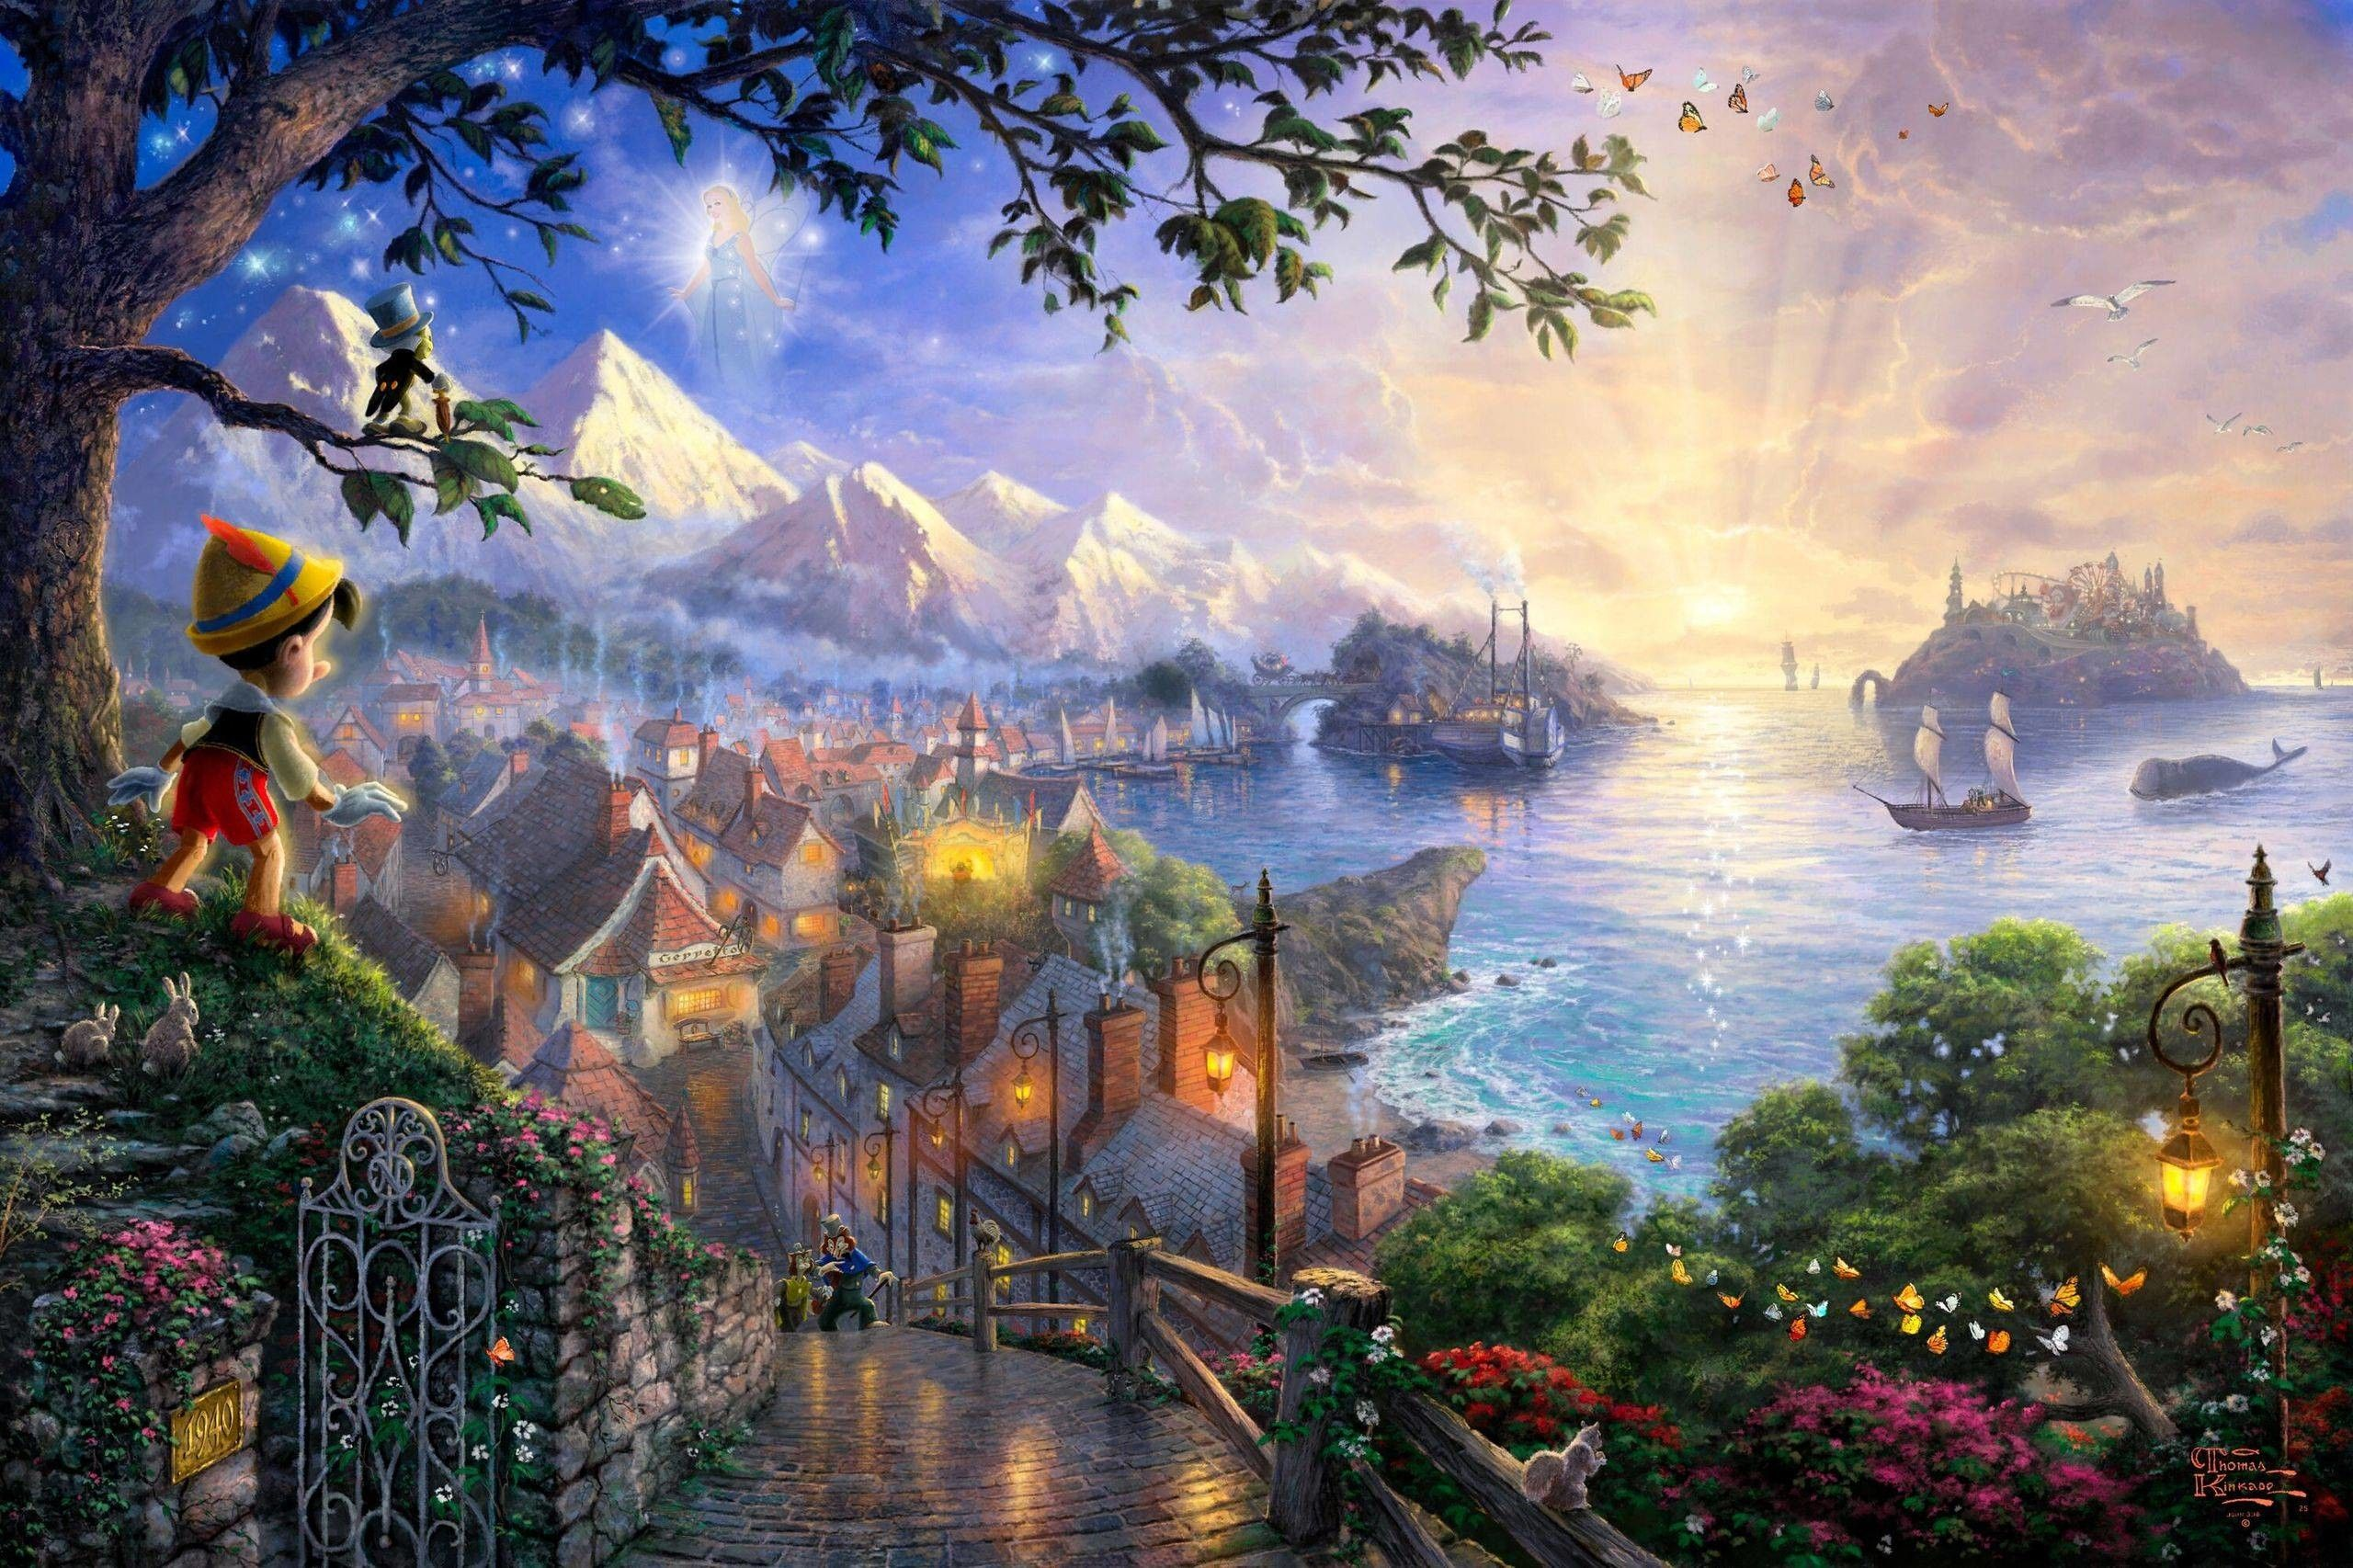 2560x1706 Full Full Hd Backgrounds Disney Thomas Kinkade Wallpaper